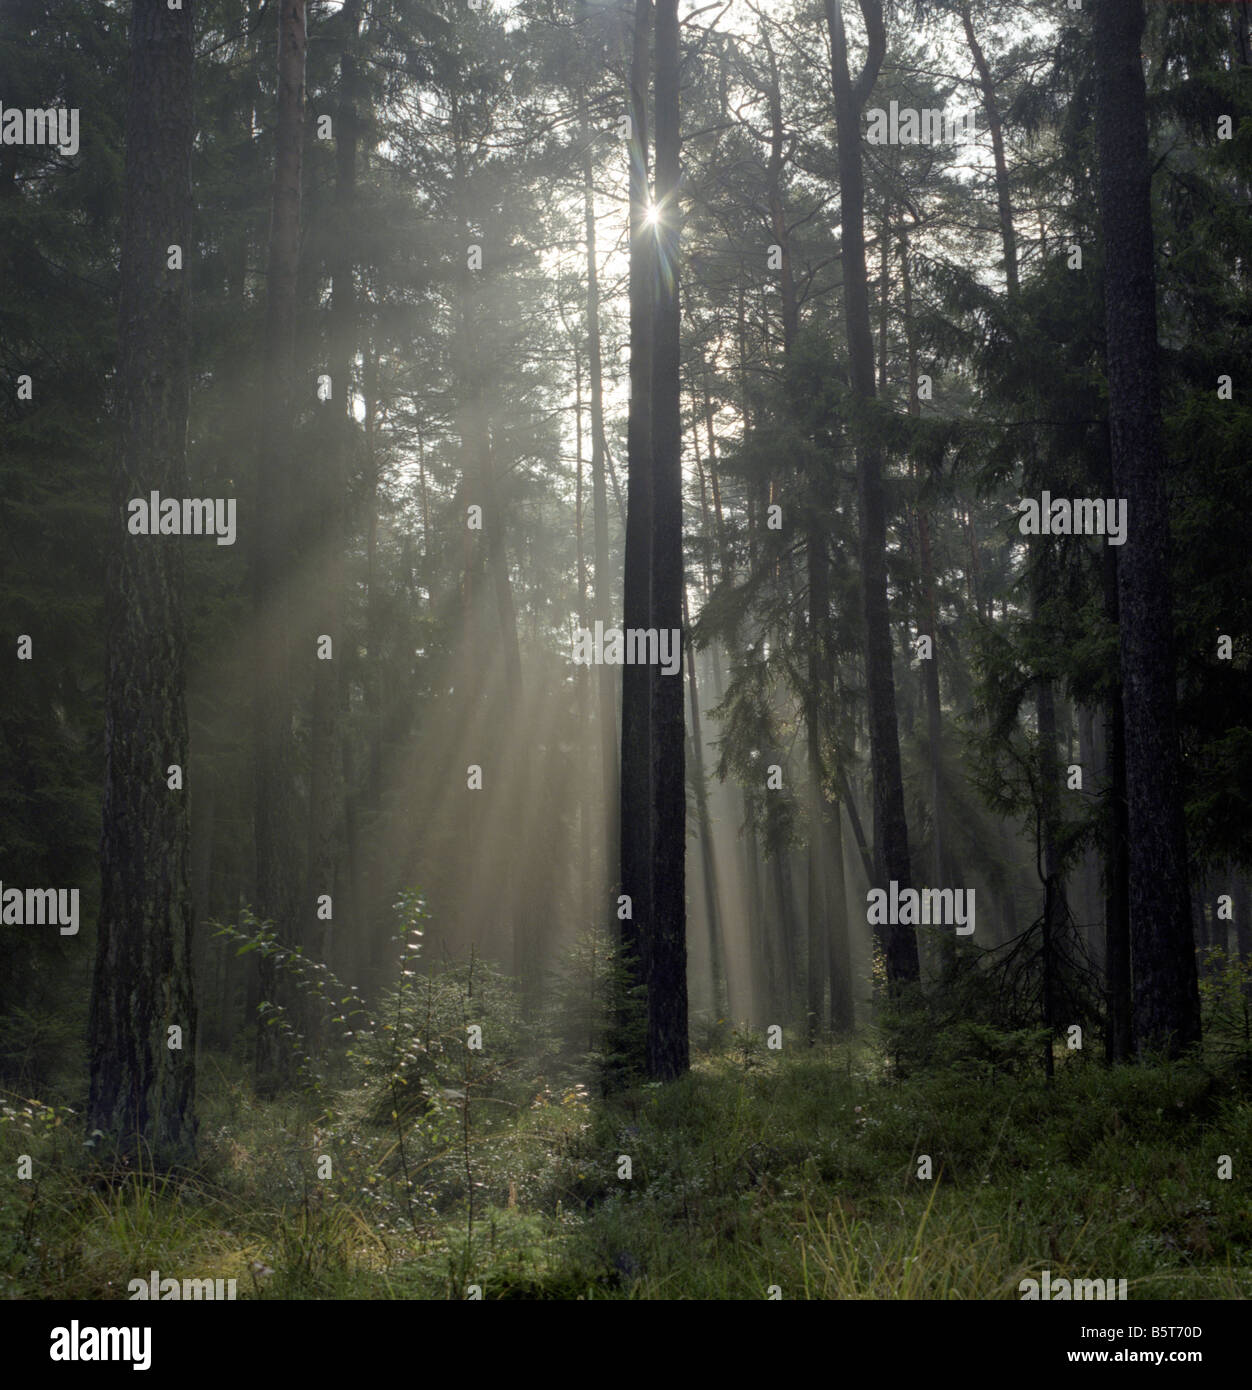 Sun behind pines and norway spruce in a forest in Germany. Sunbeams are slicing through the fog. - Stock Image